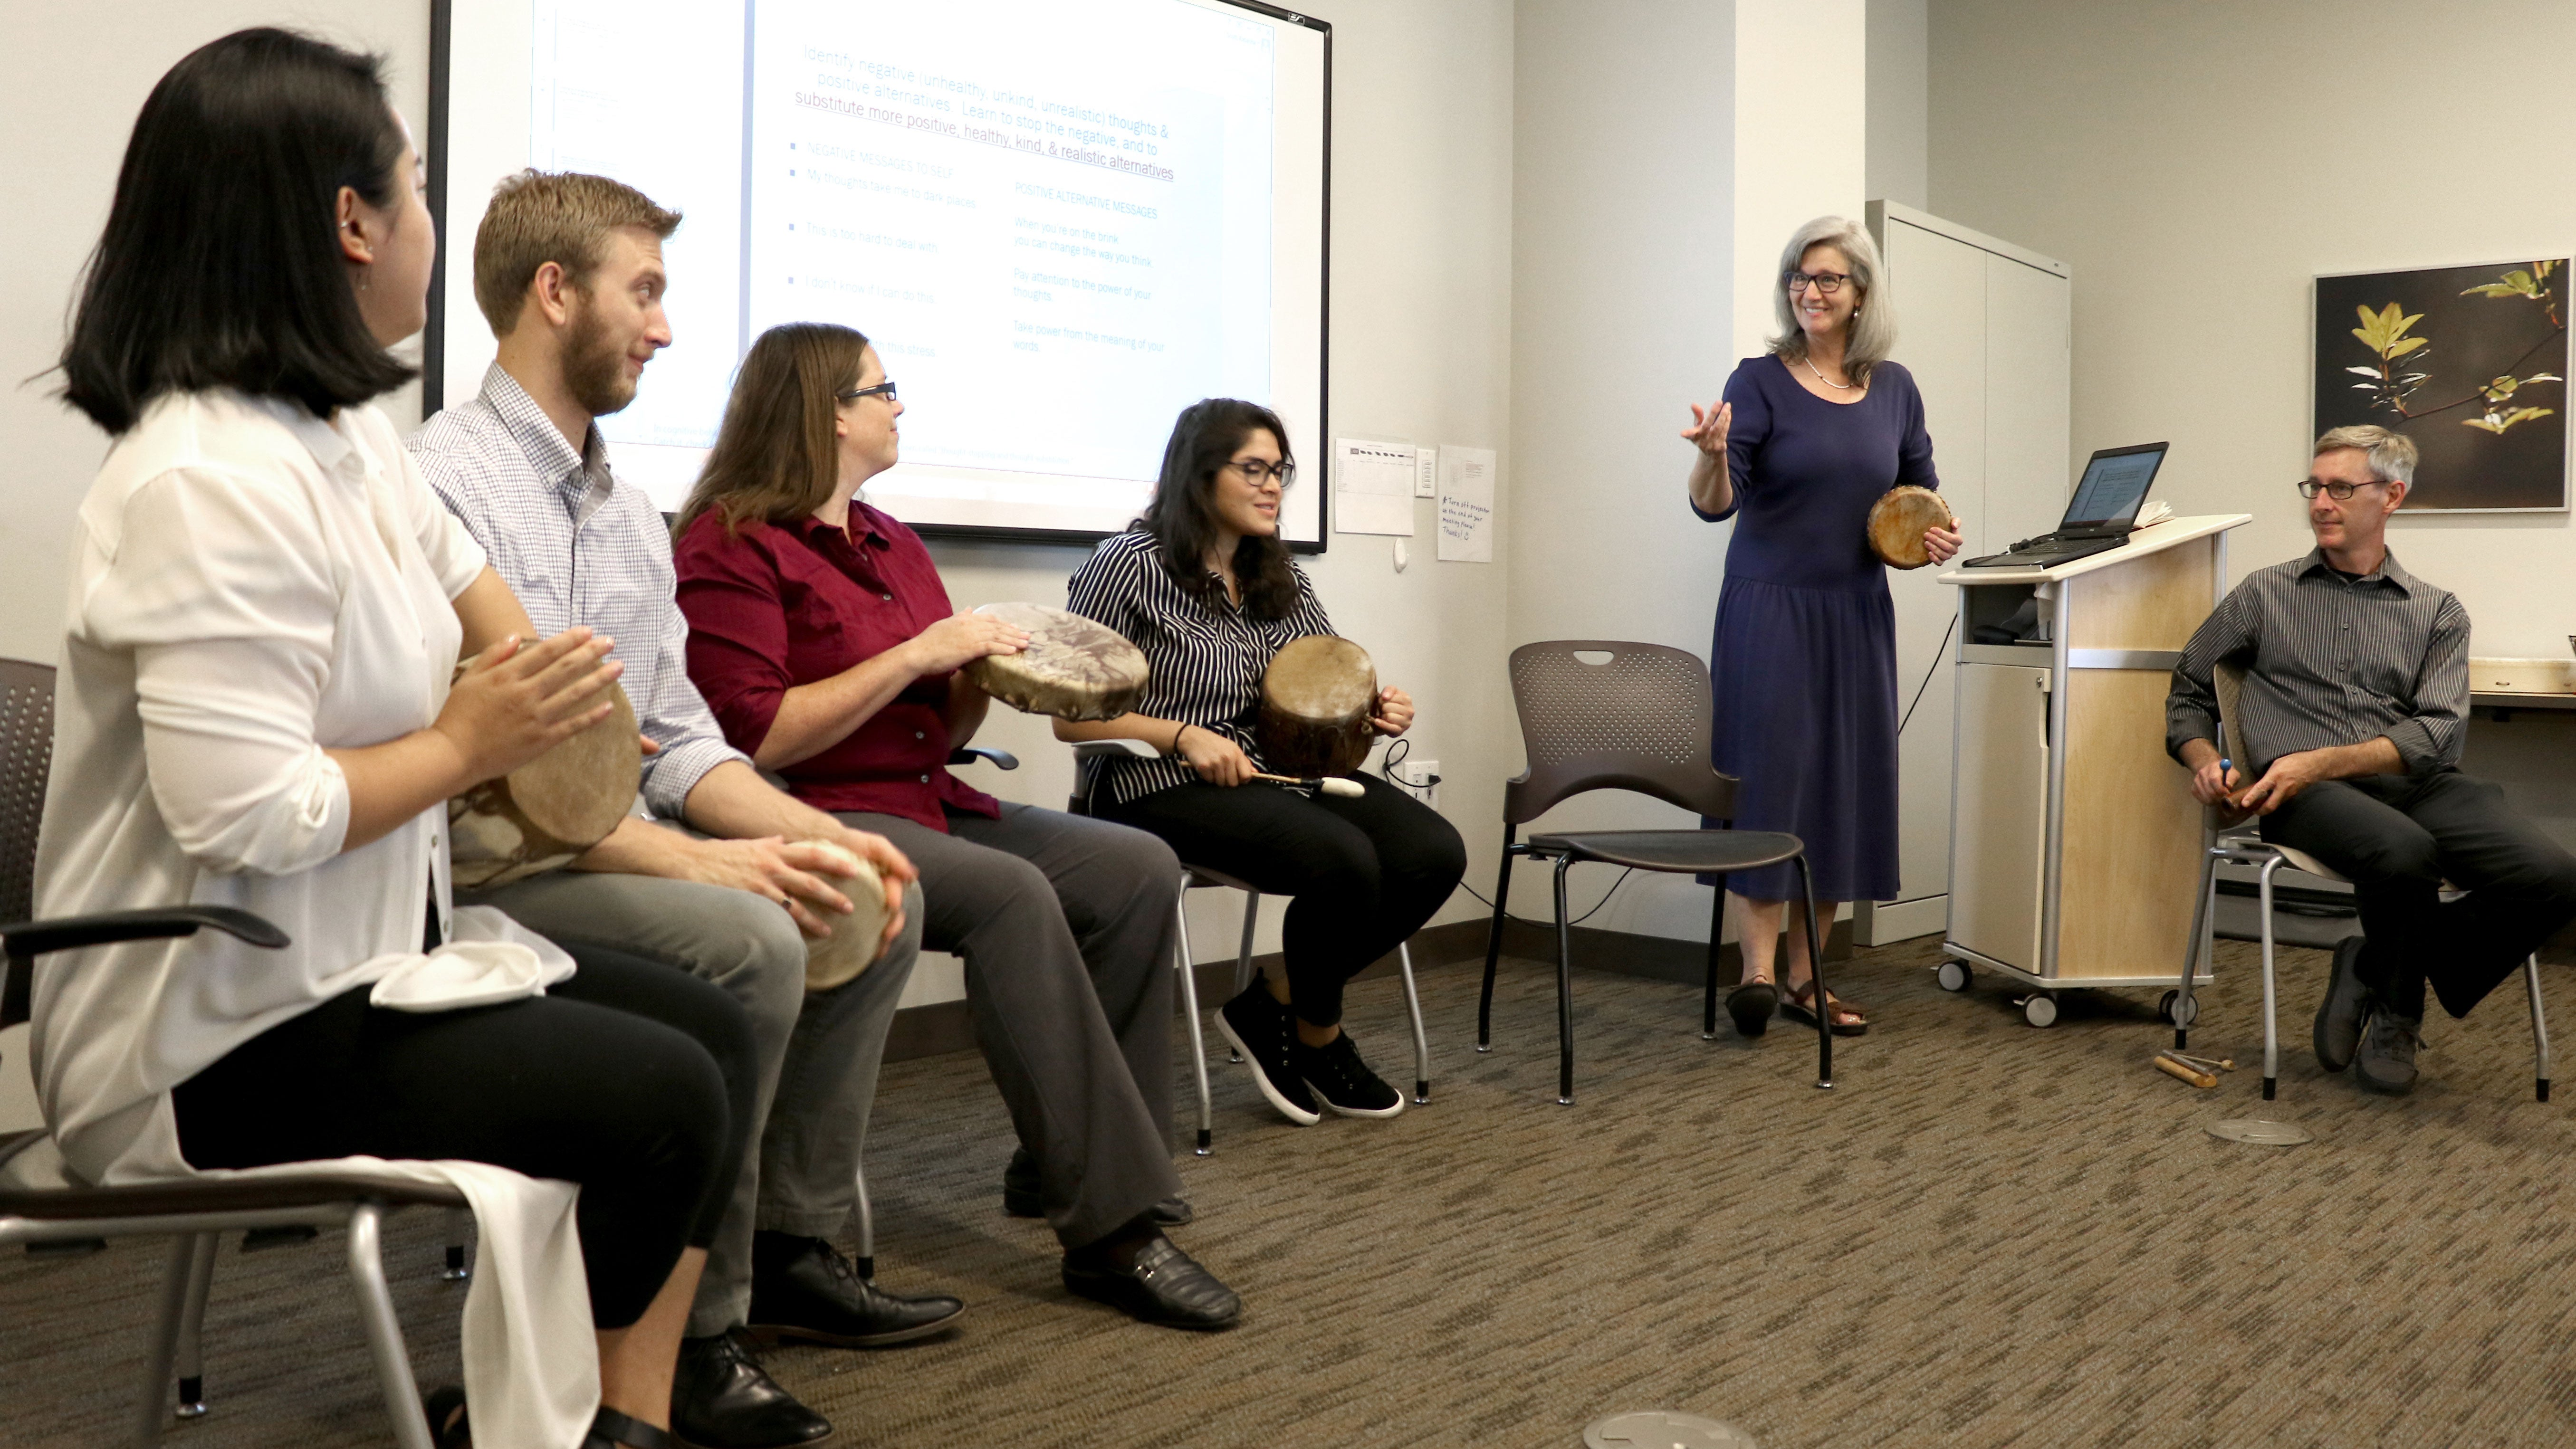 Participants in a drum workshop at a cancer center